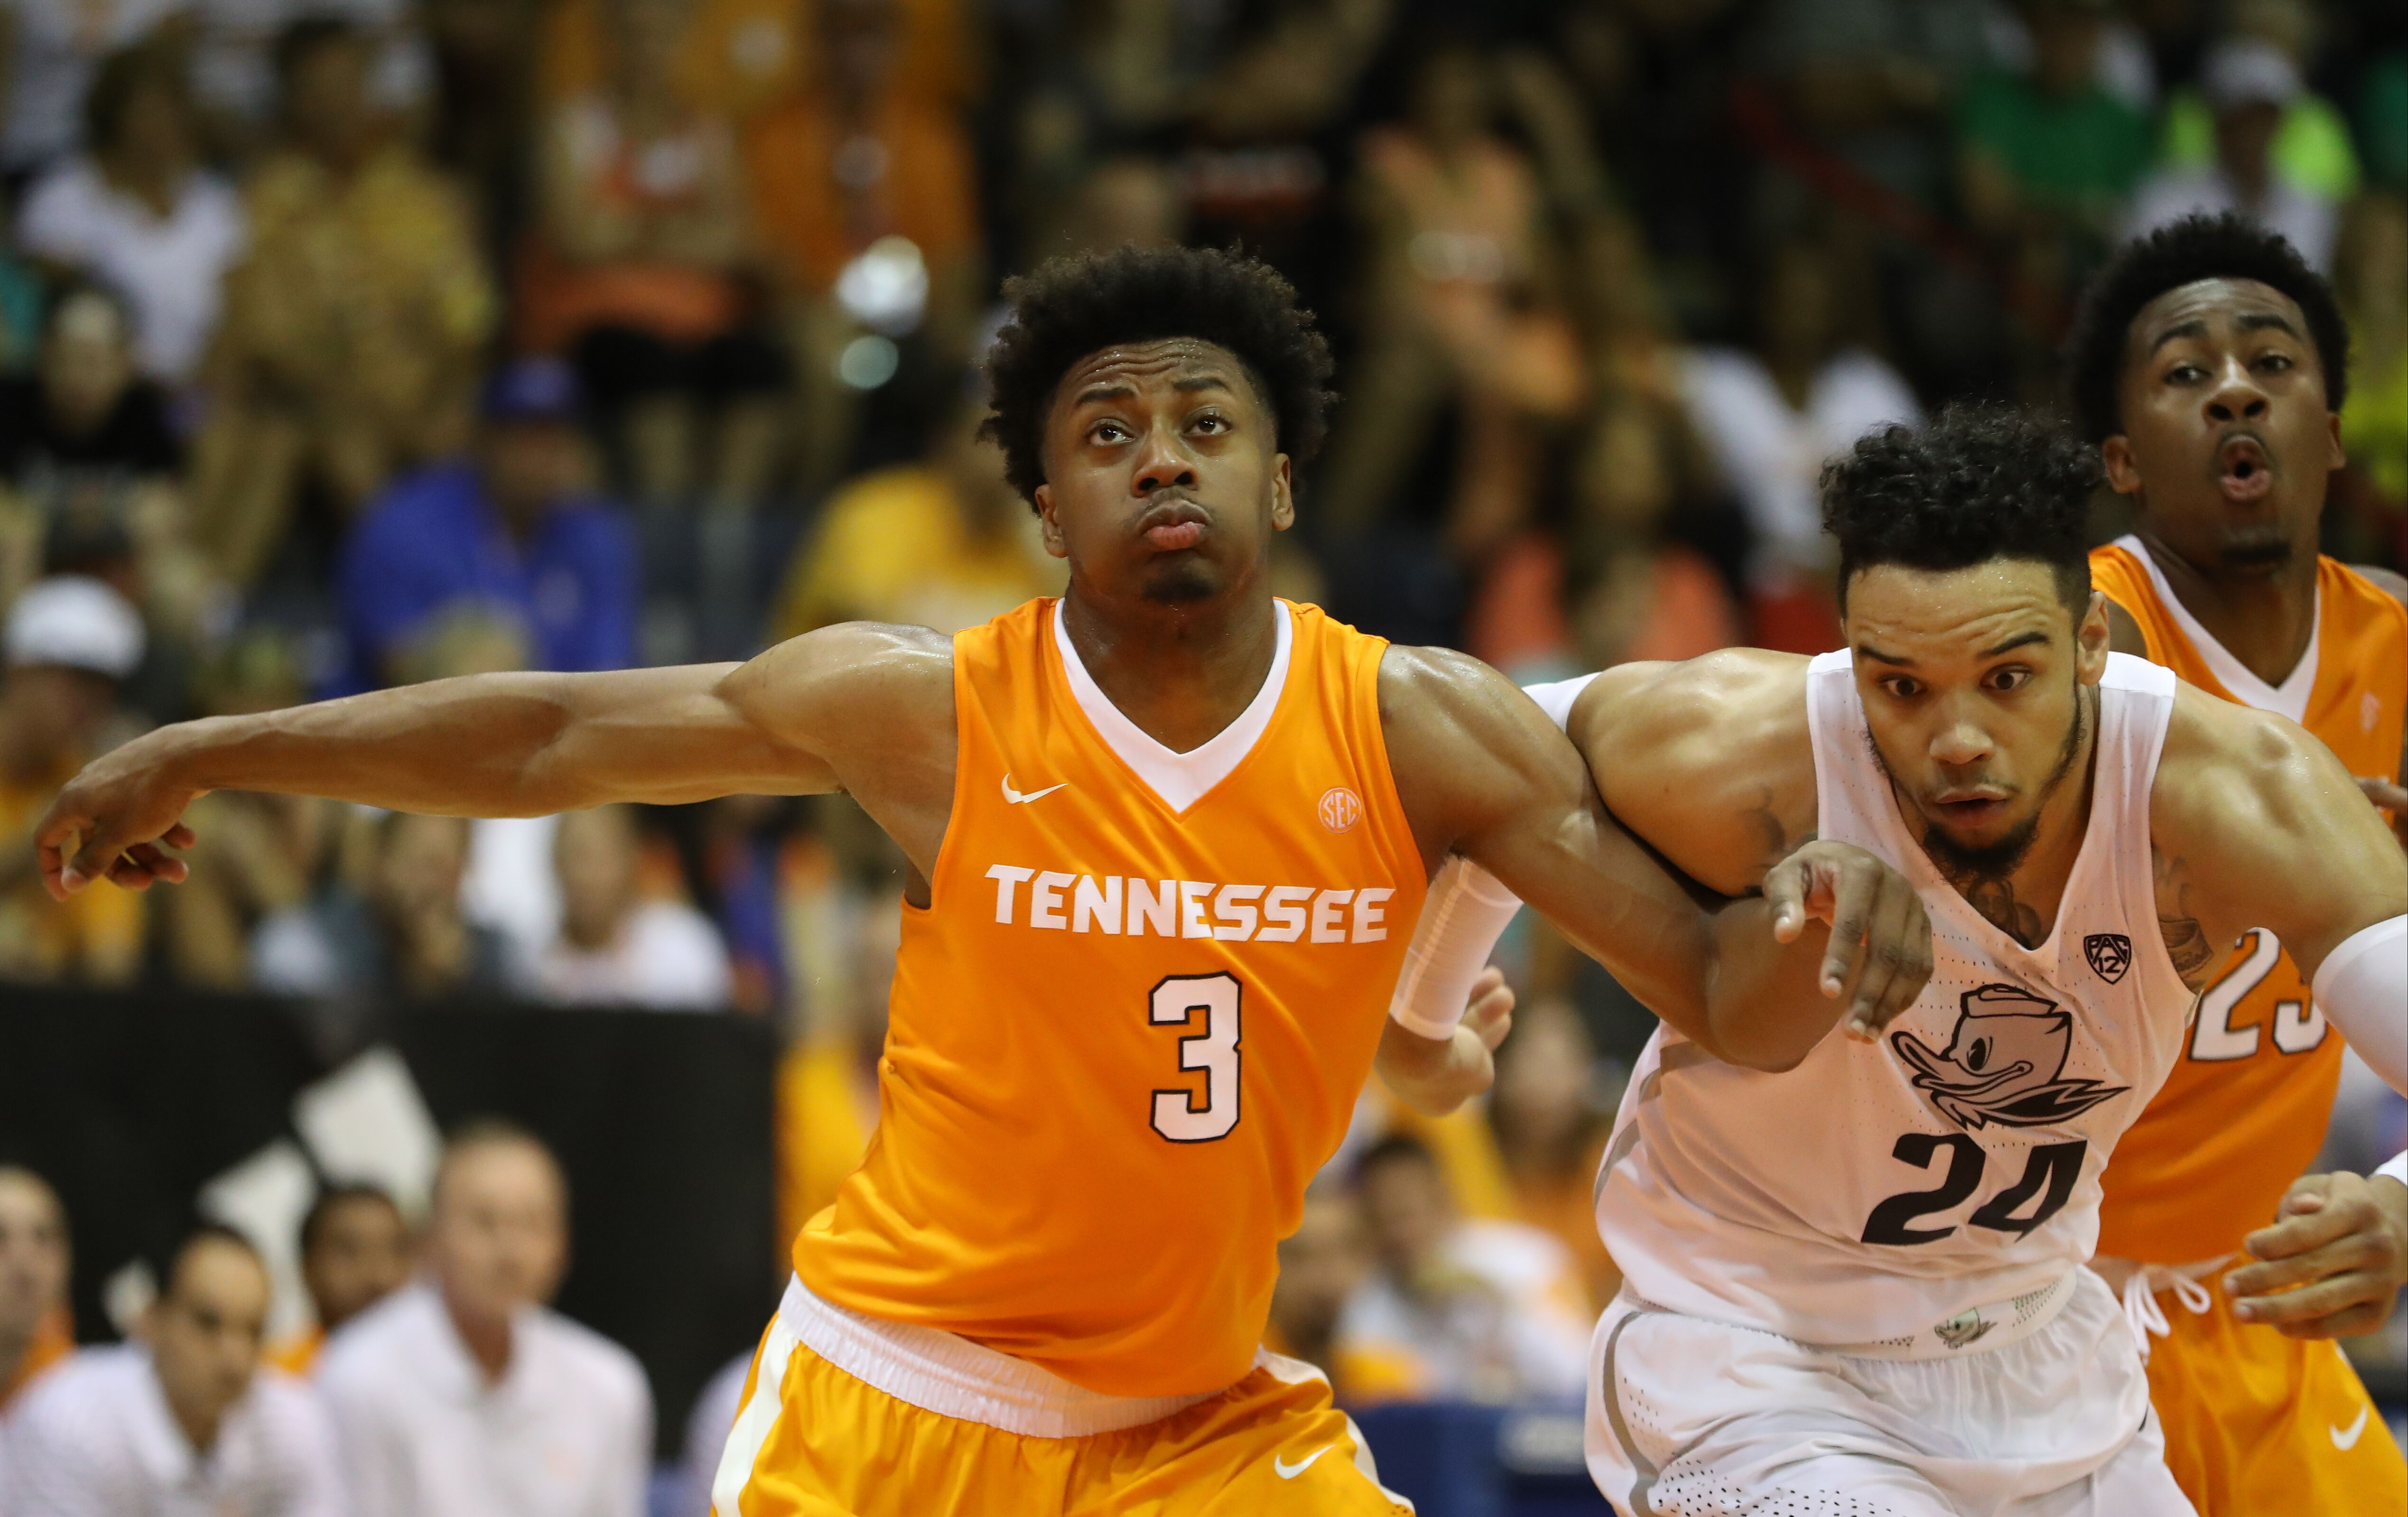 Get the latest Tennessee Volunteers news scores stats standings rumors and more from ESPN